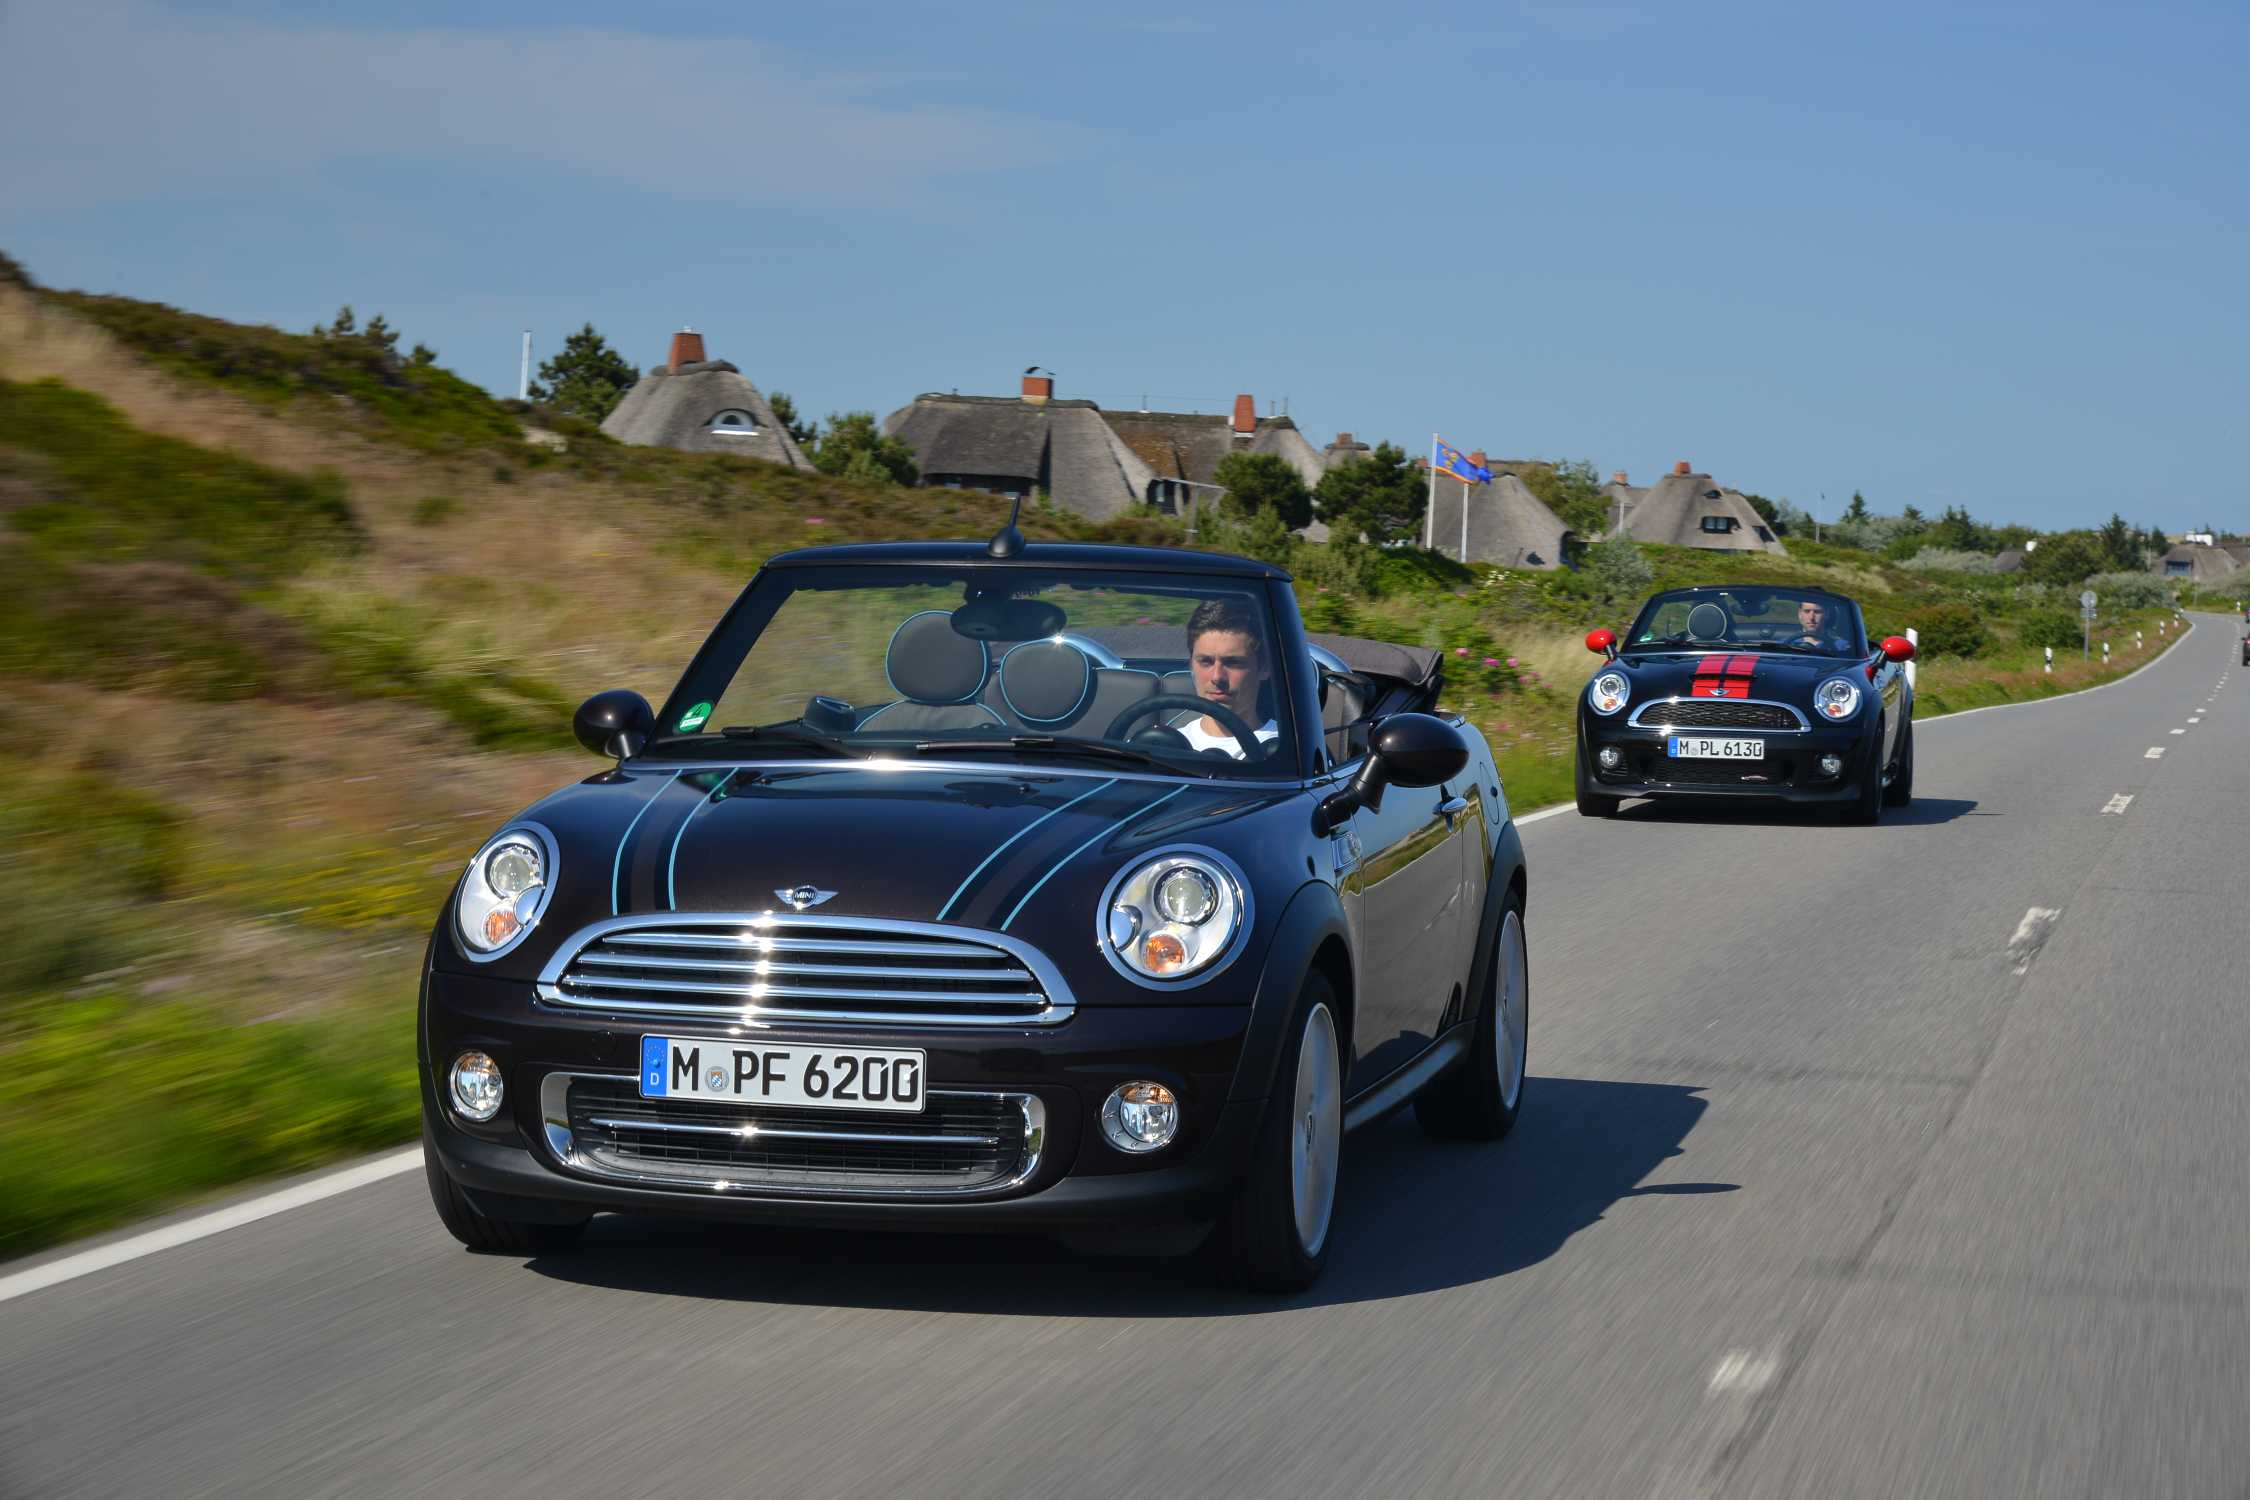 Mini Convertible And Mini Roadster Two Models That Mean The Skys